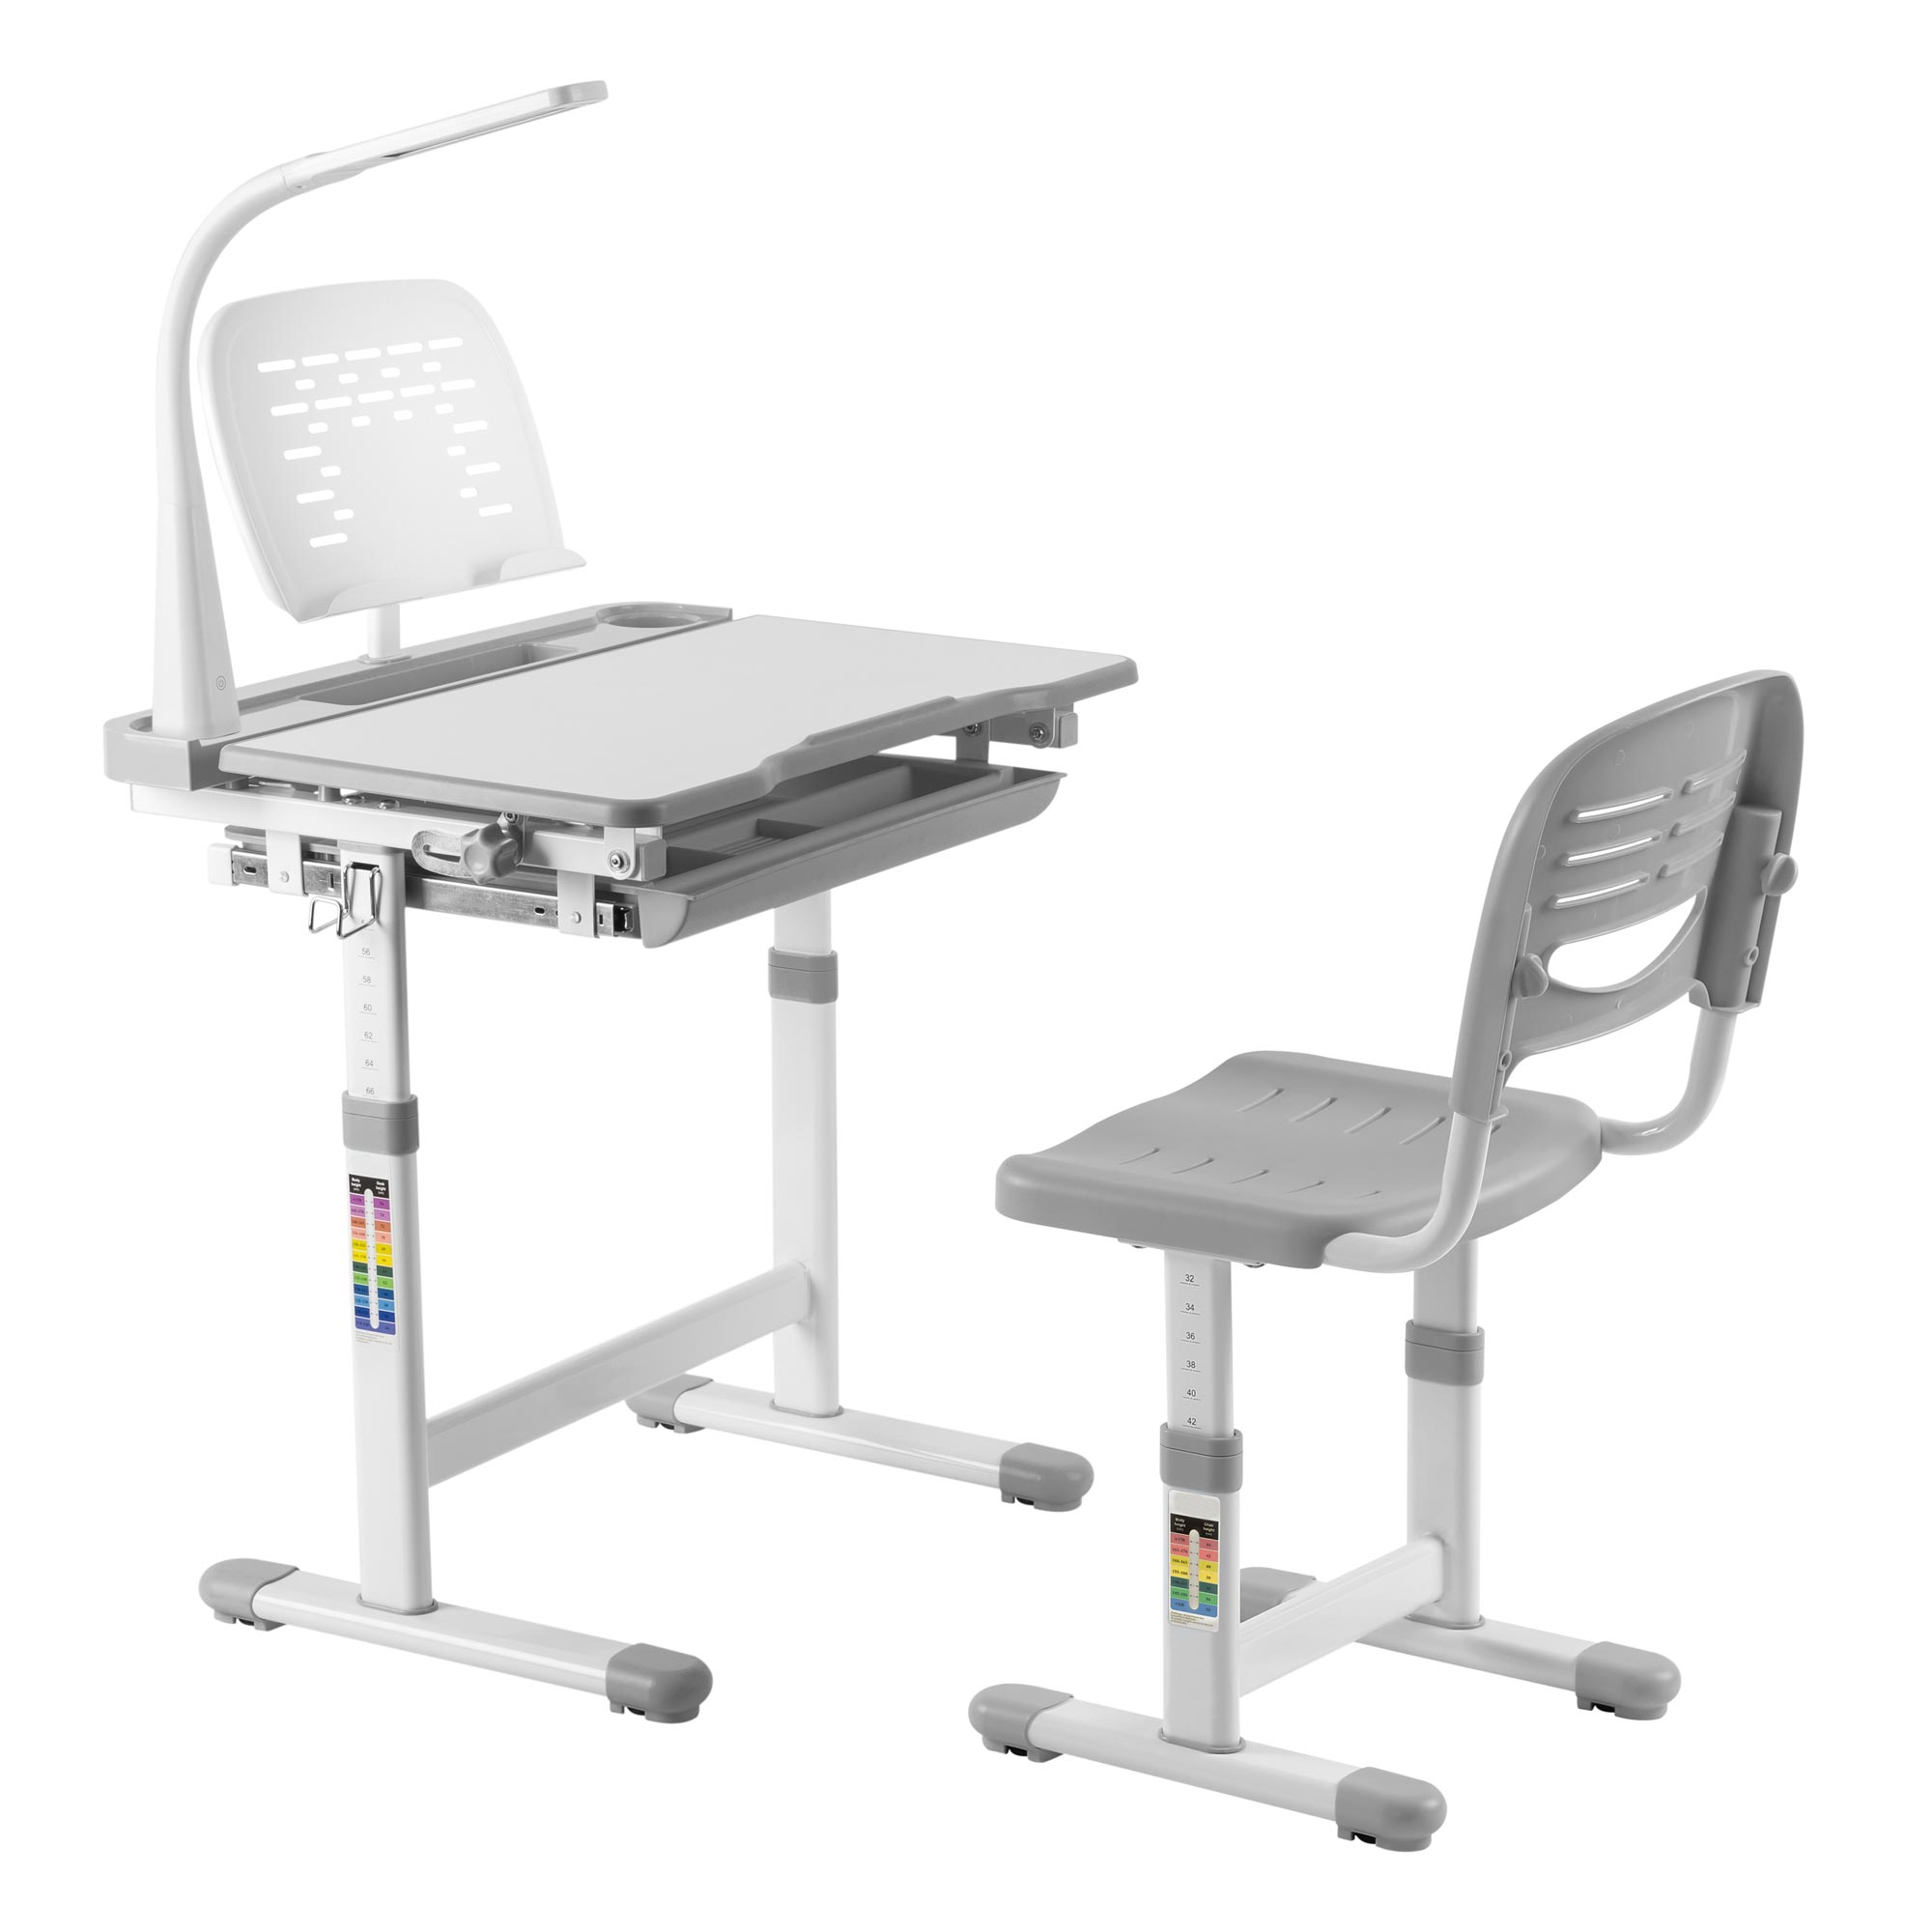 ergonomic-kids-table-chair-study-desk-for-children-Midi-desk-grey-01